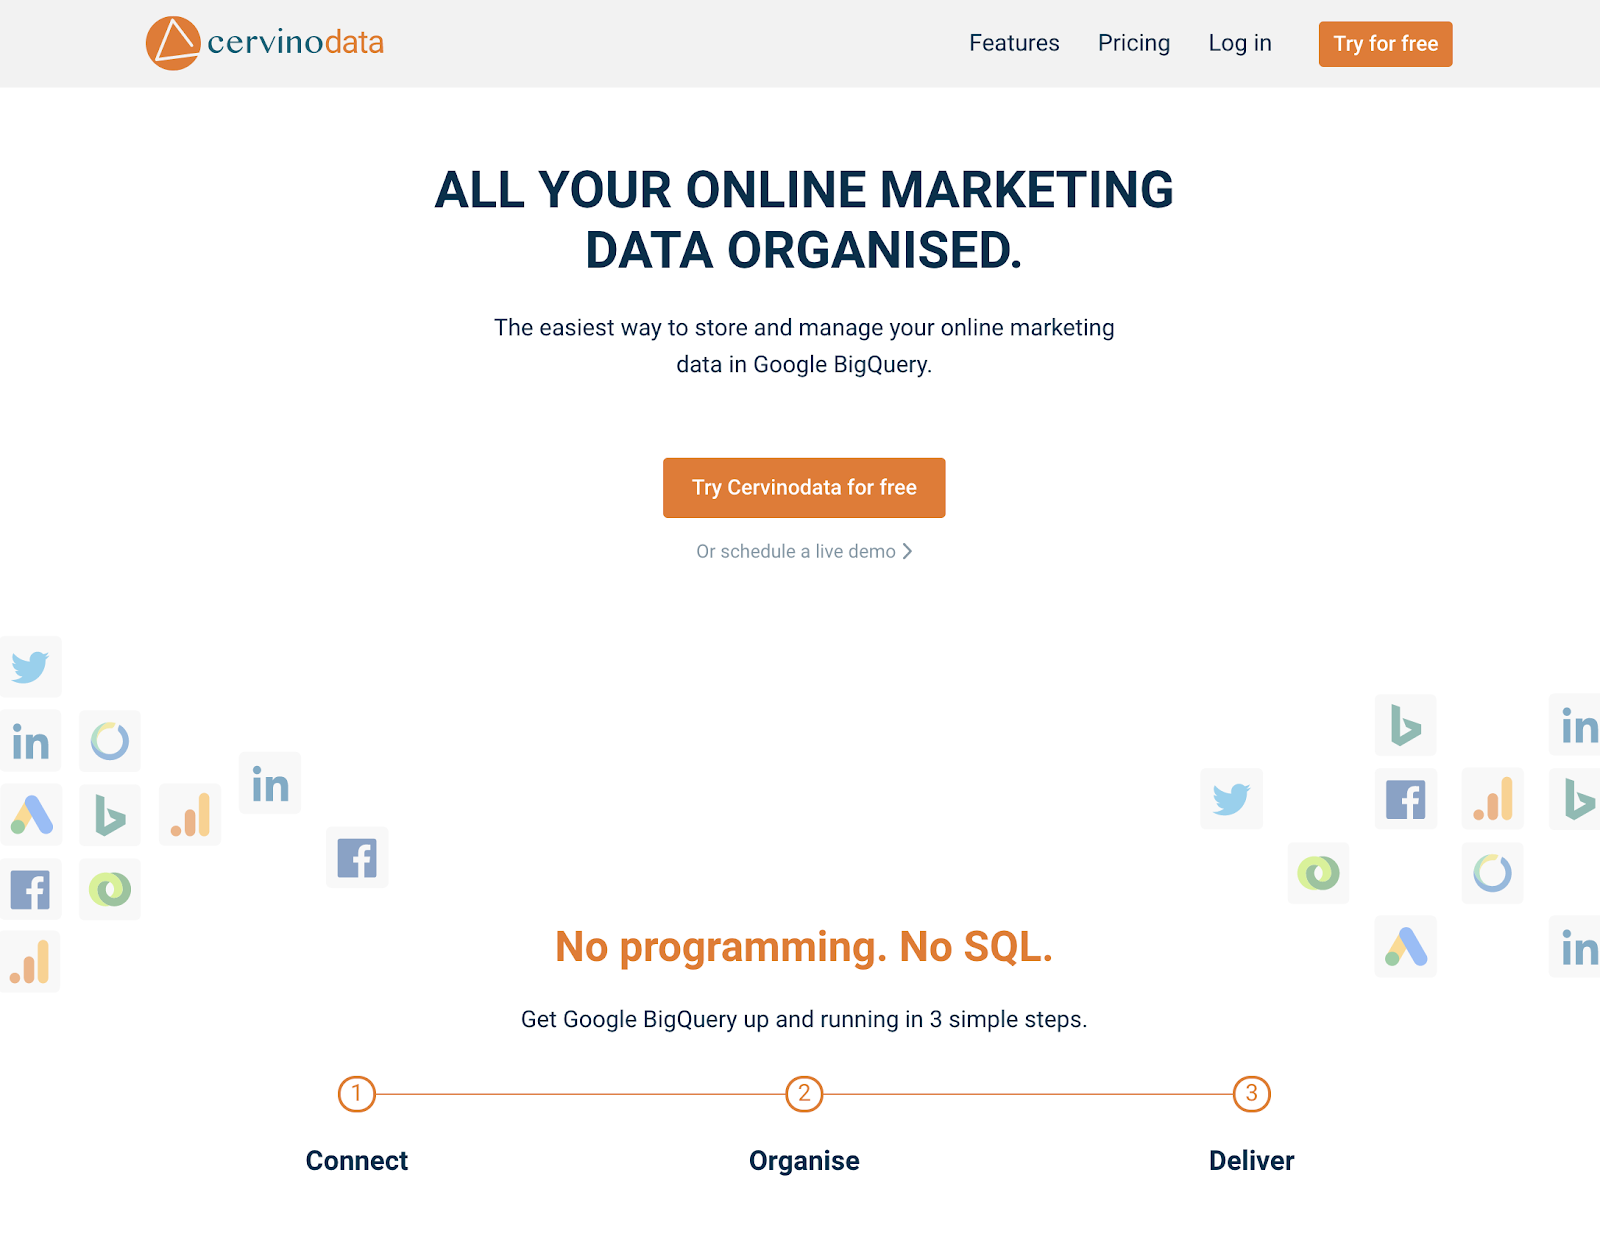 cervinodata website